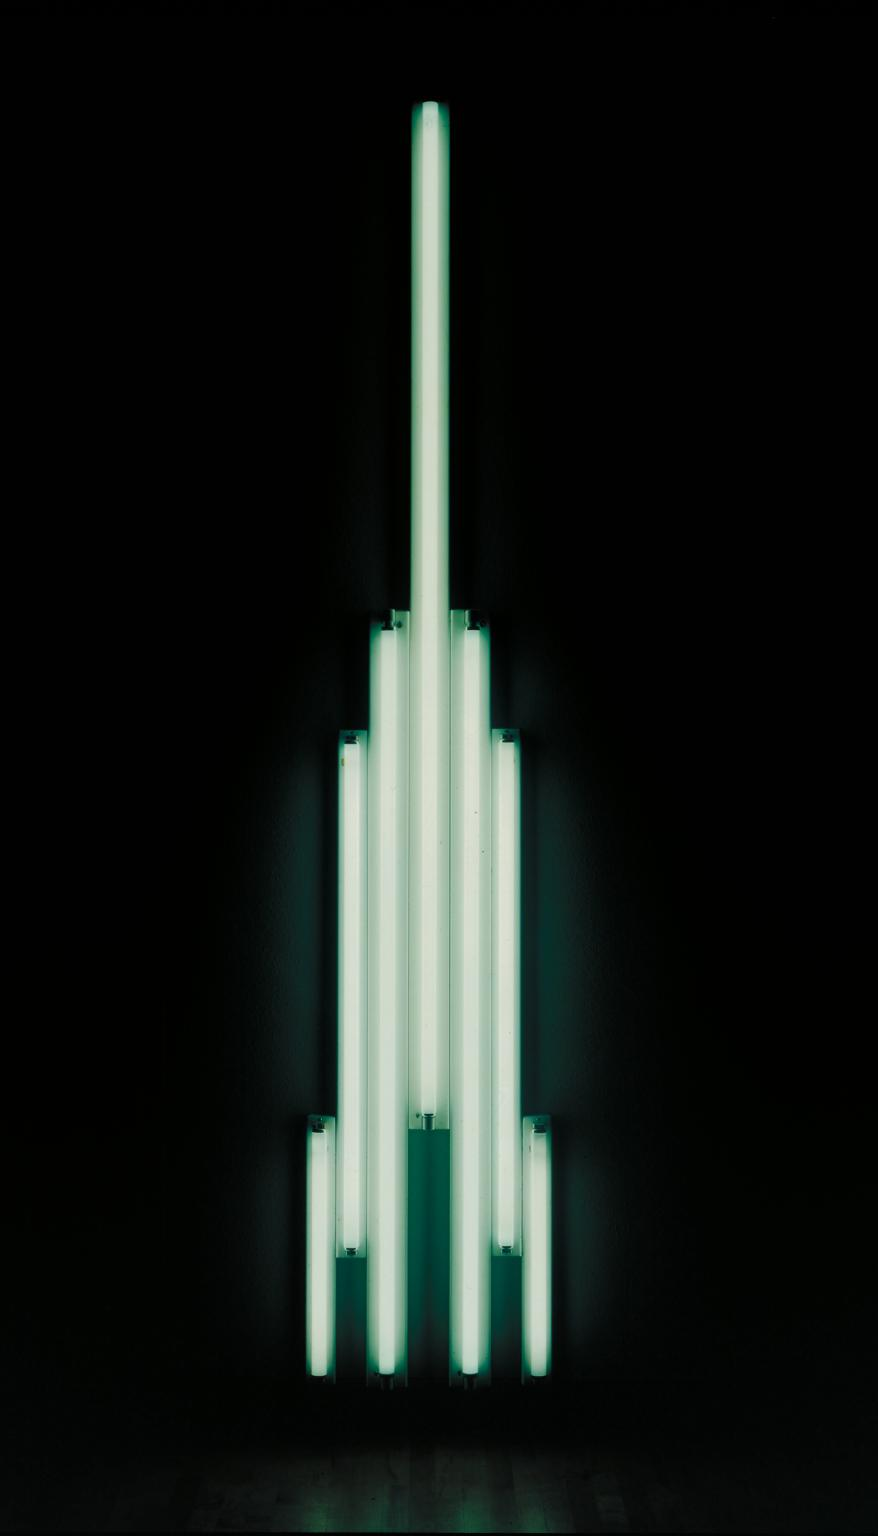 Dan Flavin 'Monument' for V. Tatlin 1966-9